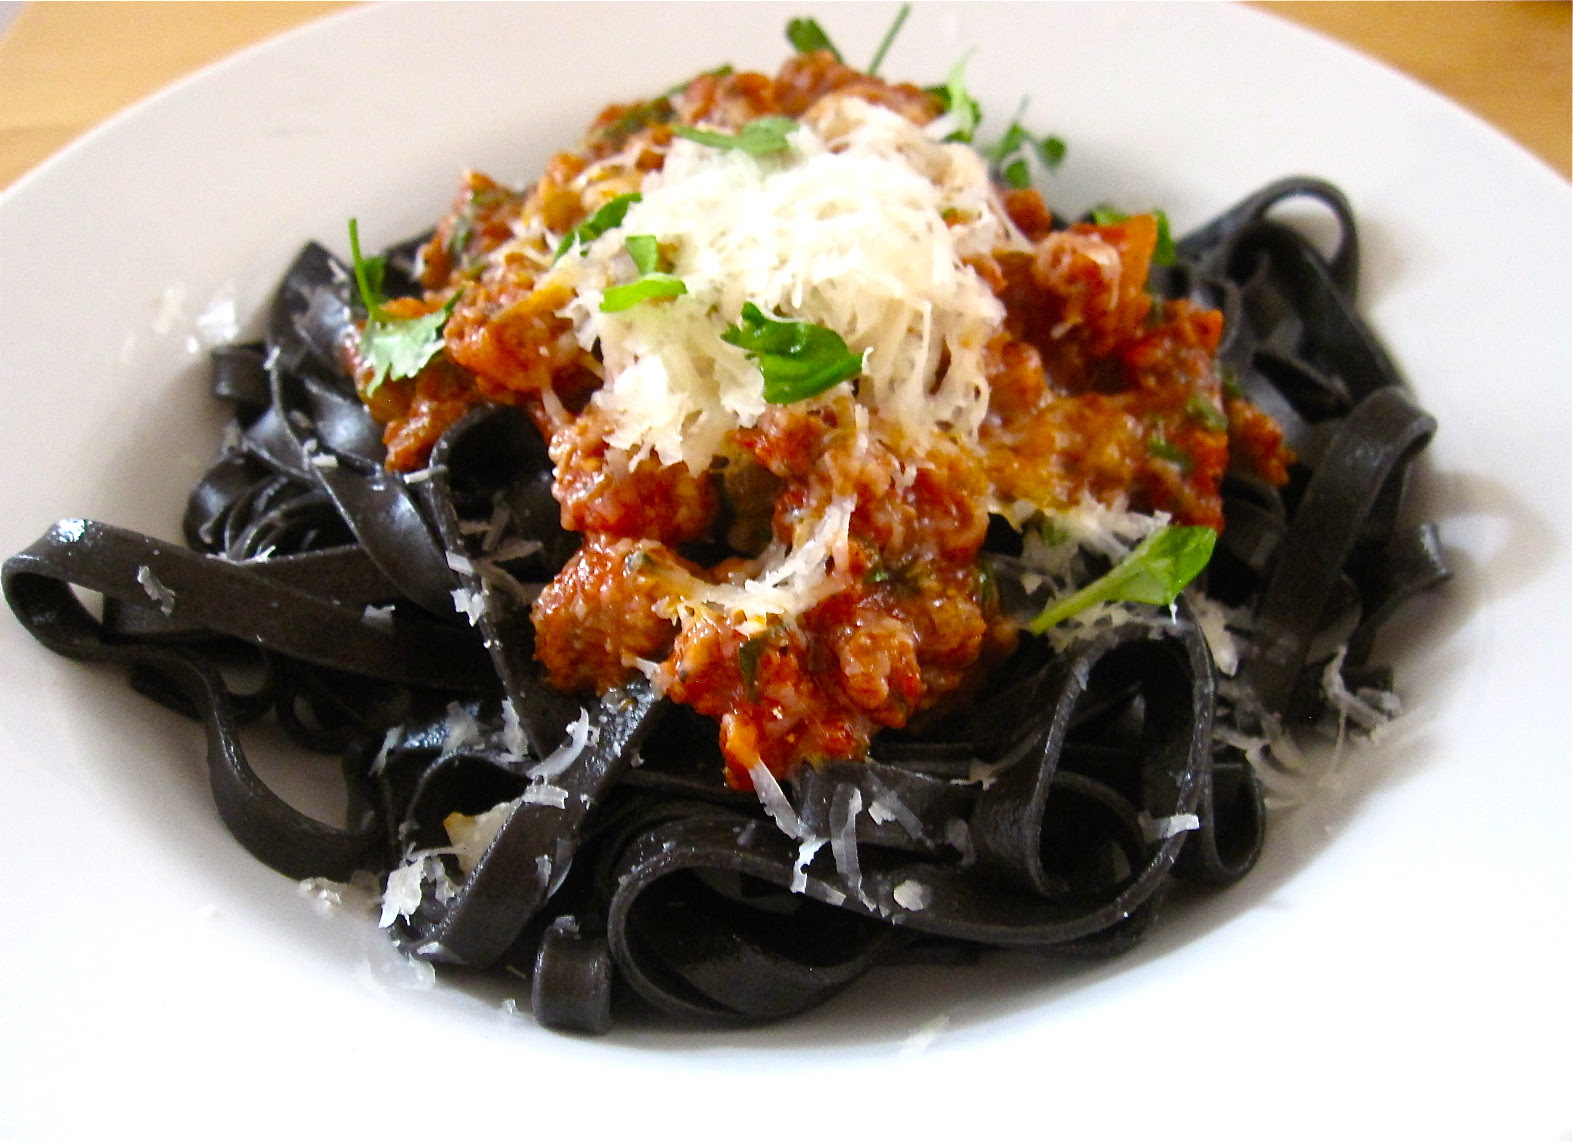 Squid ink pasta and easy bolognese - eatpress